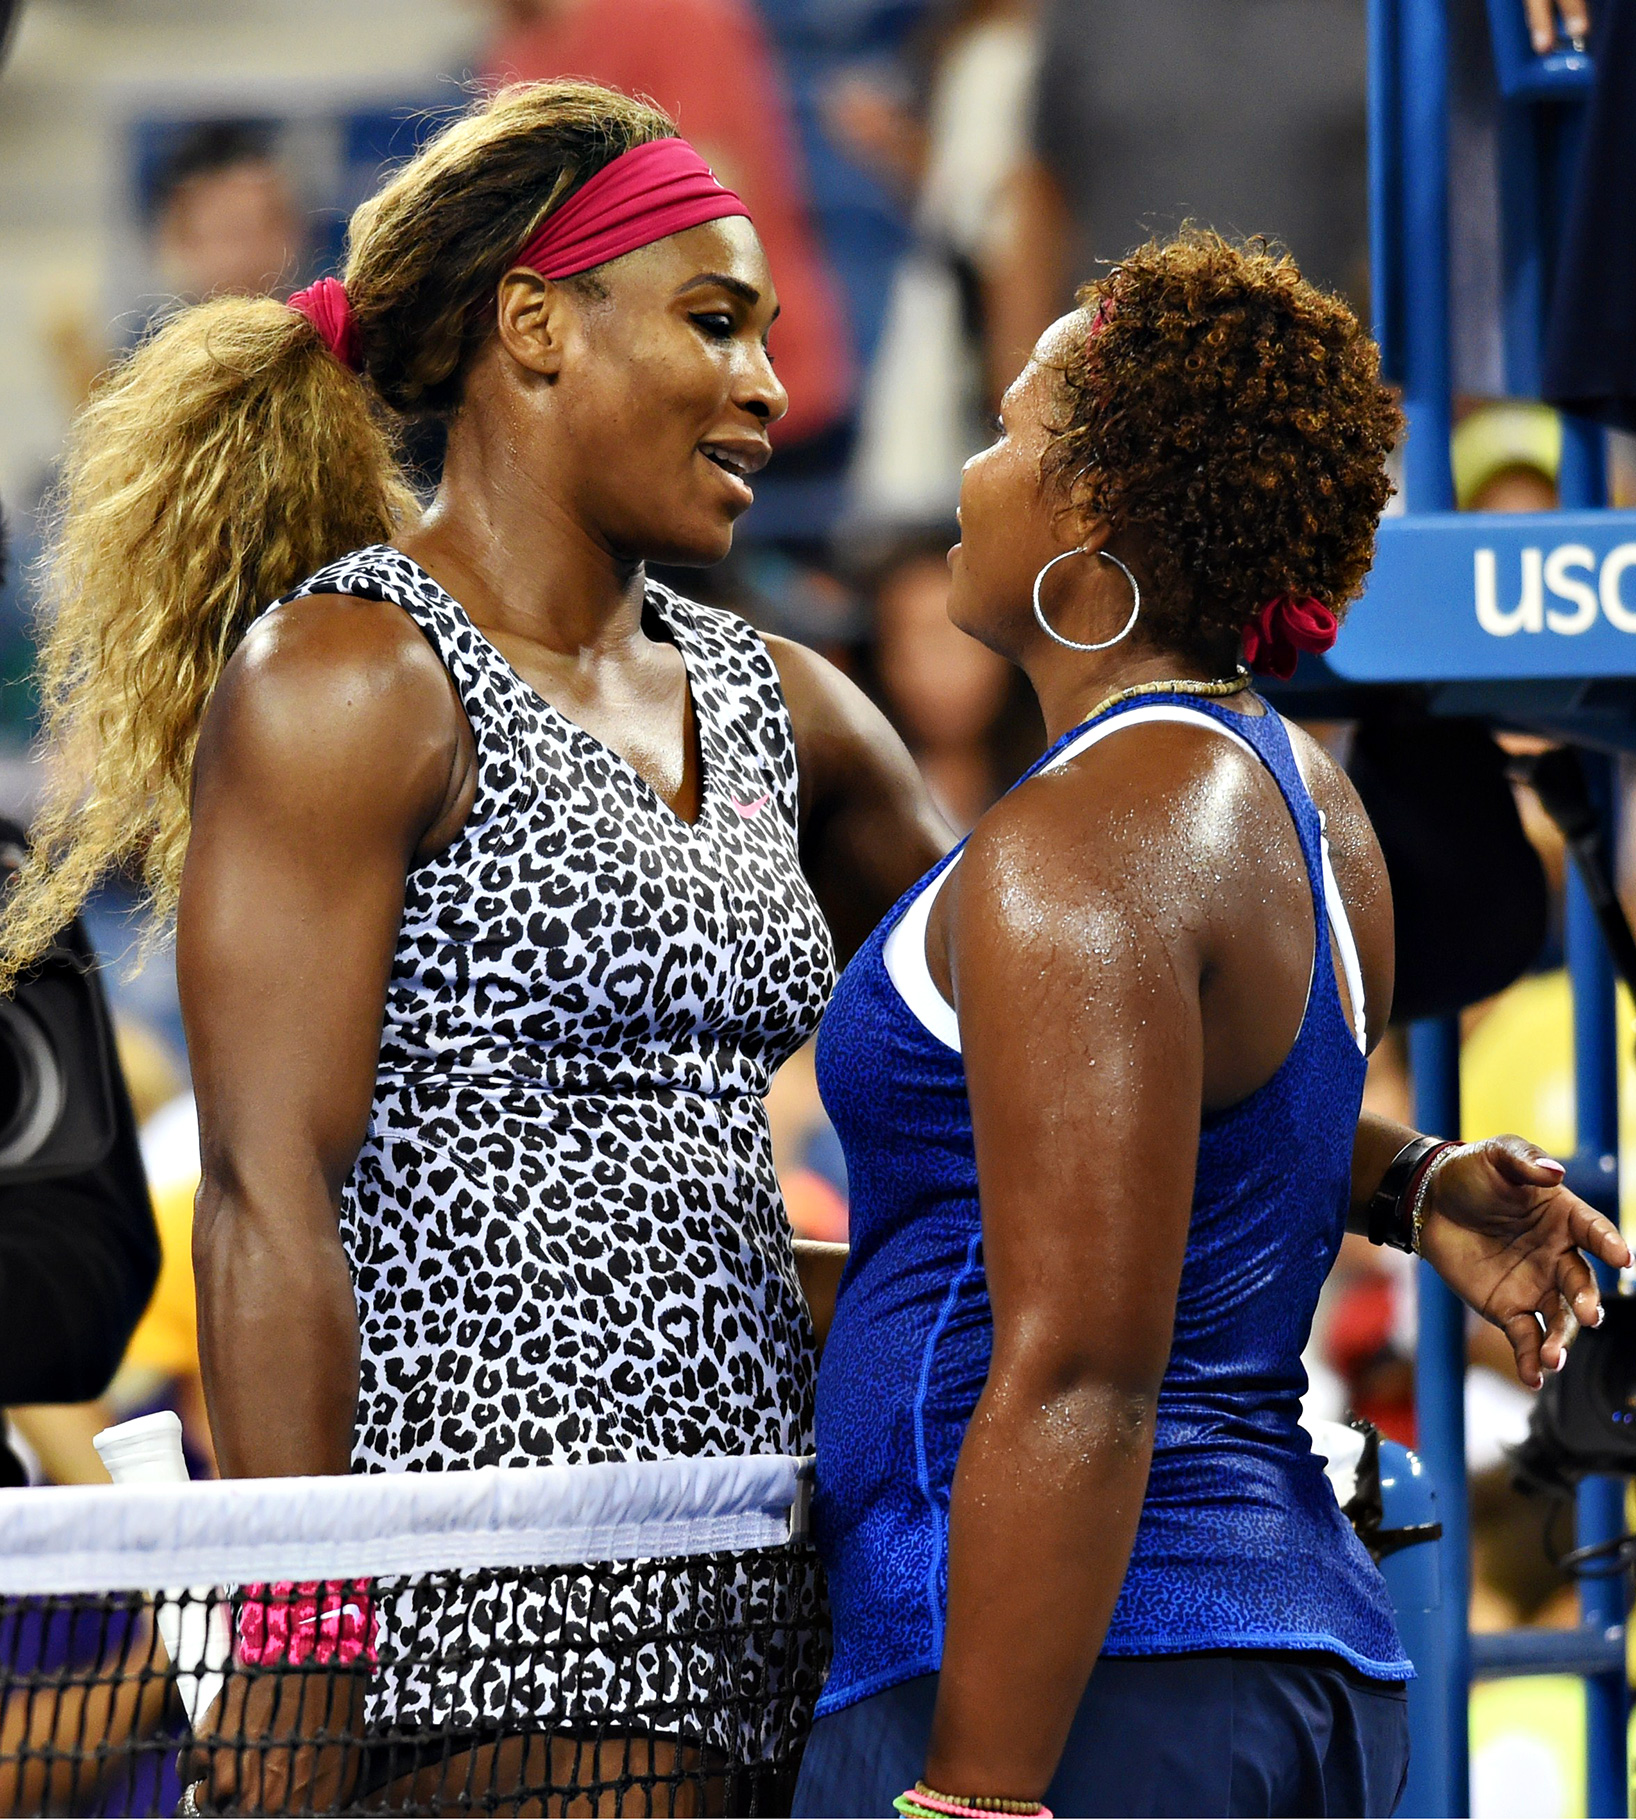 Serena Williams showed rising American 18-year-old Taylor Townsend how it's done, cruising to a 6-3, 6-1 first-round victory Tuesday night at the US Open.